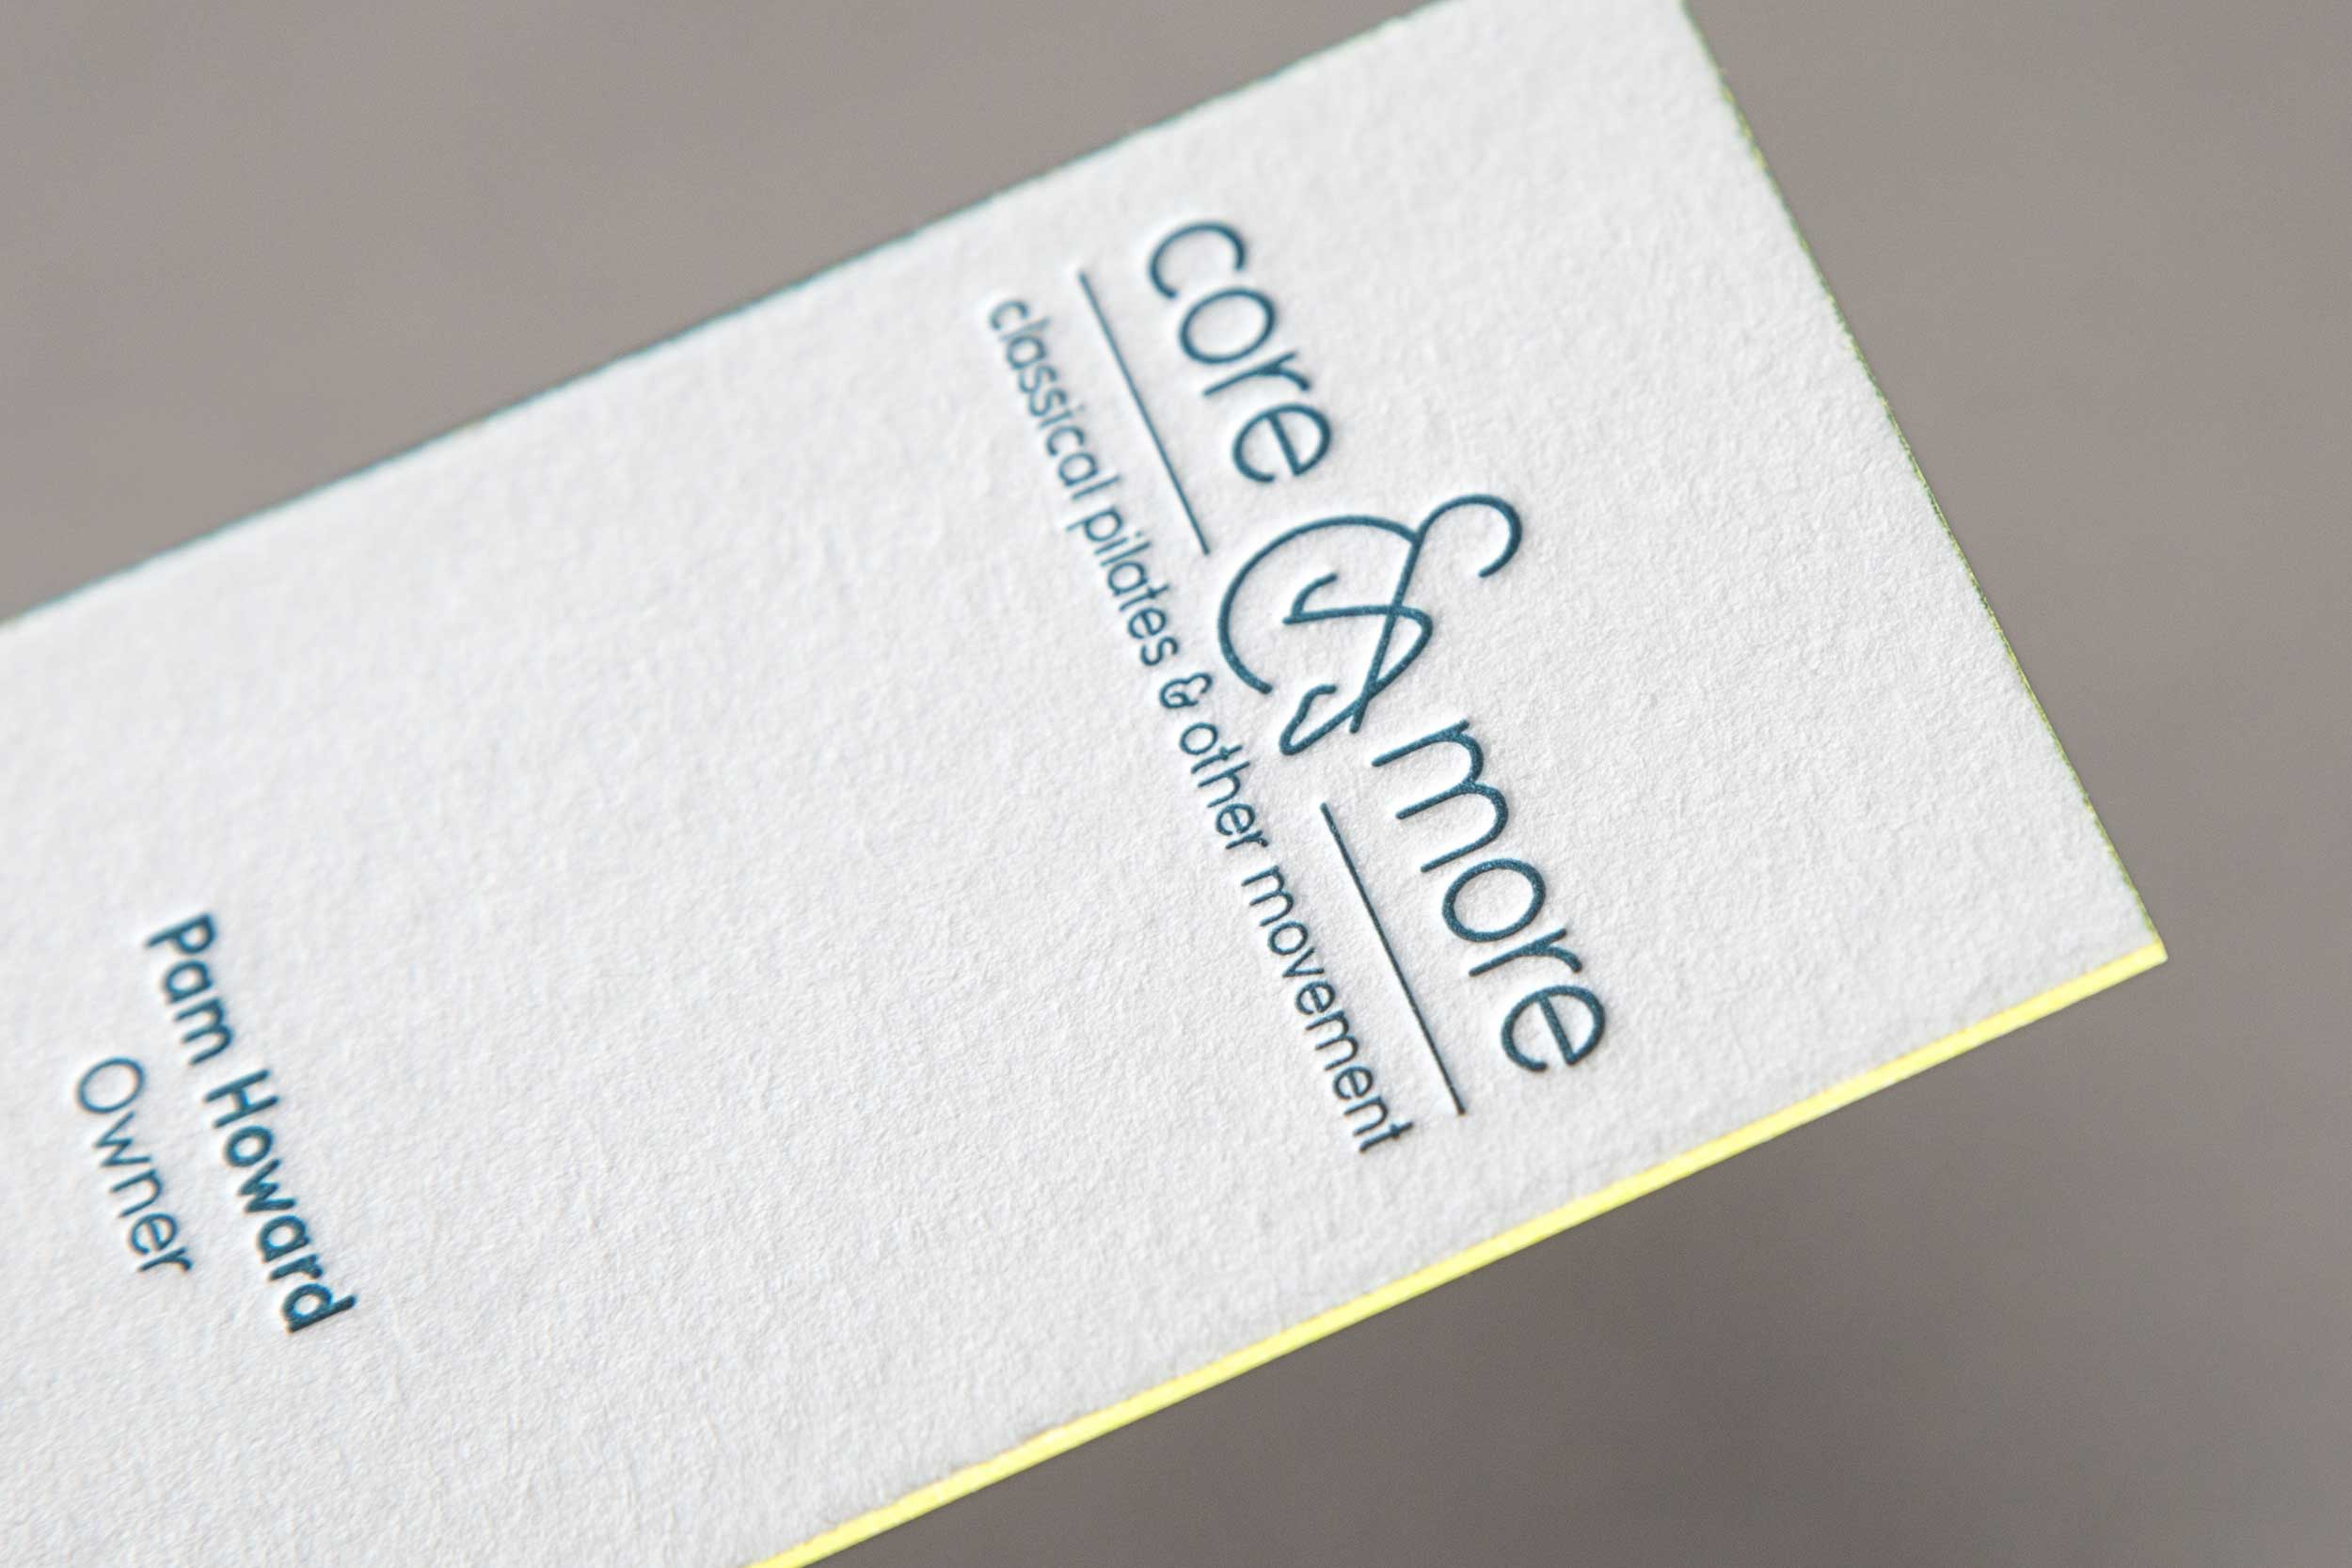 A close up of the Core and More business card to show the edge printing.